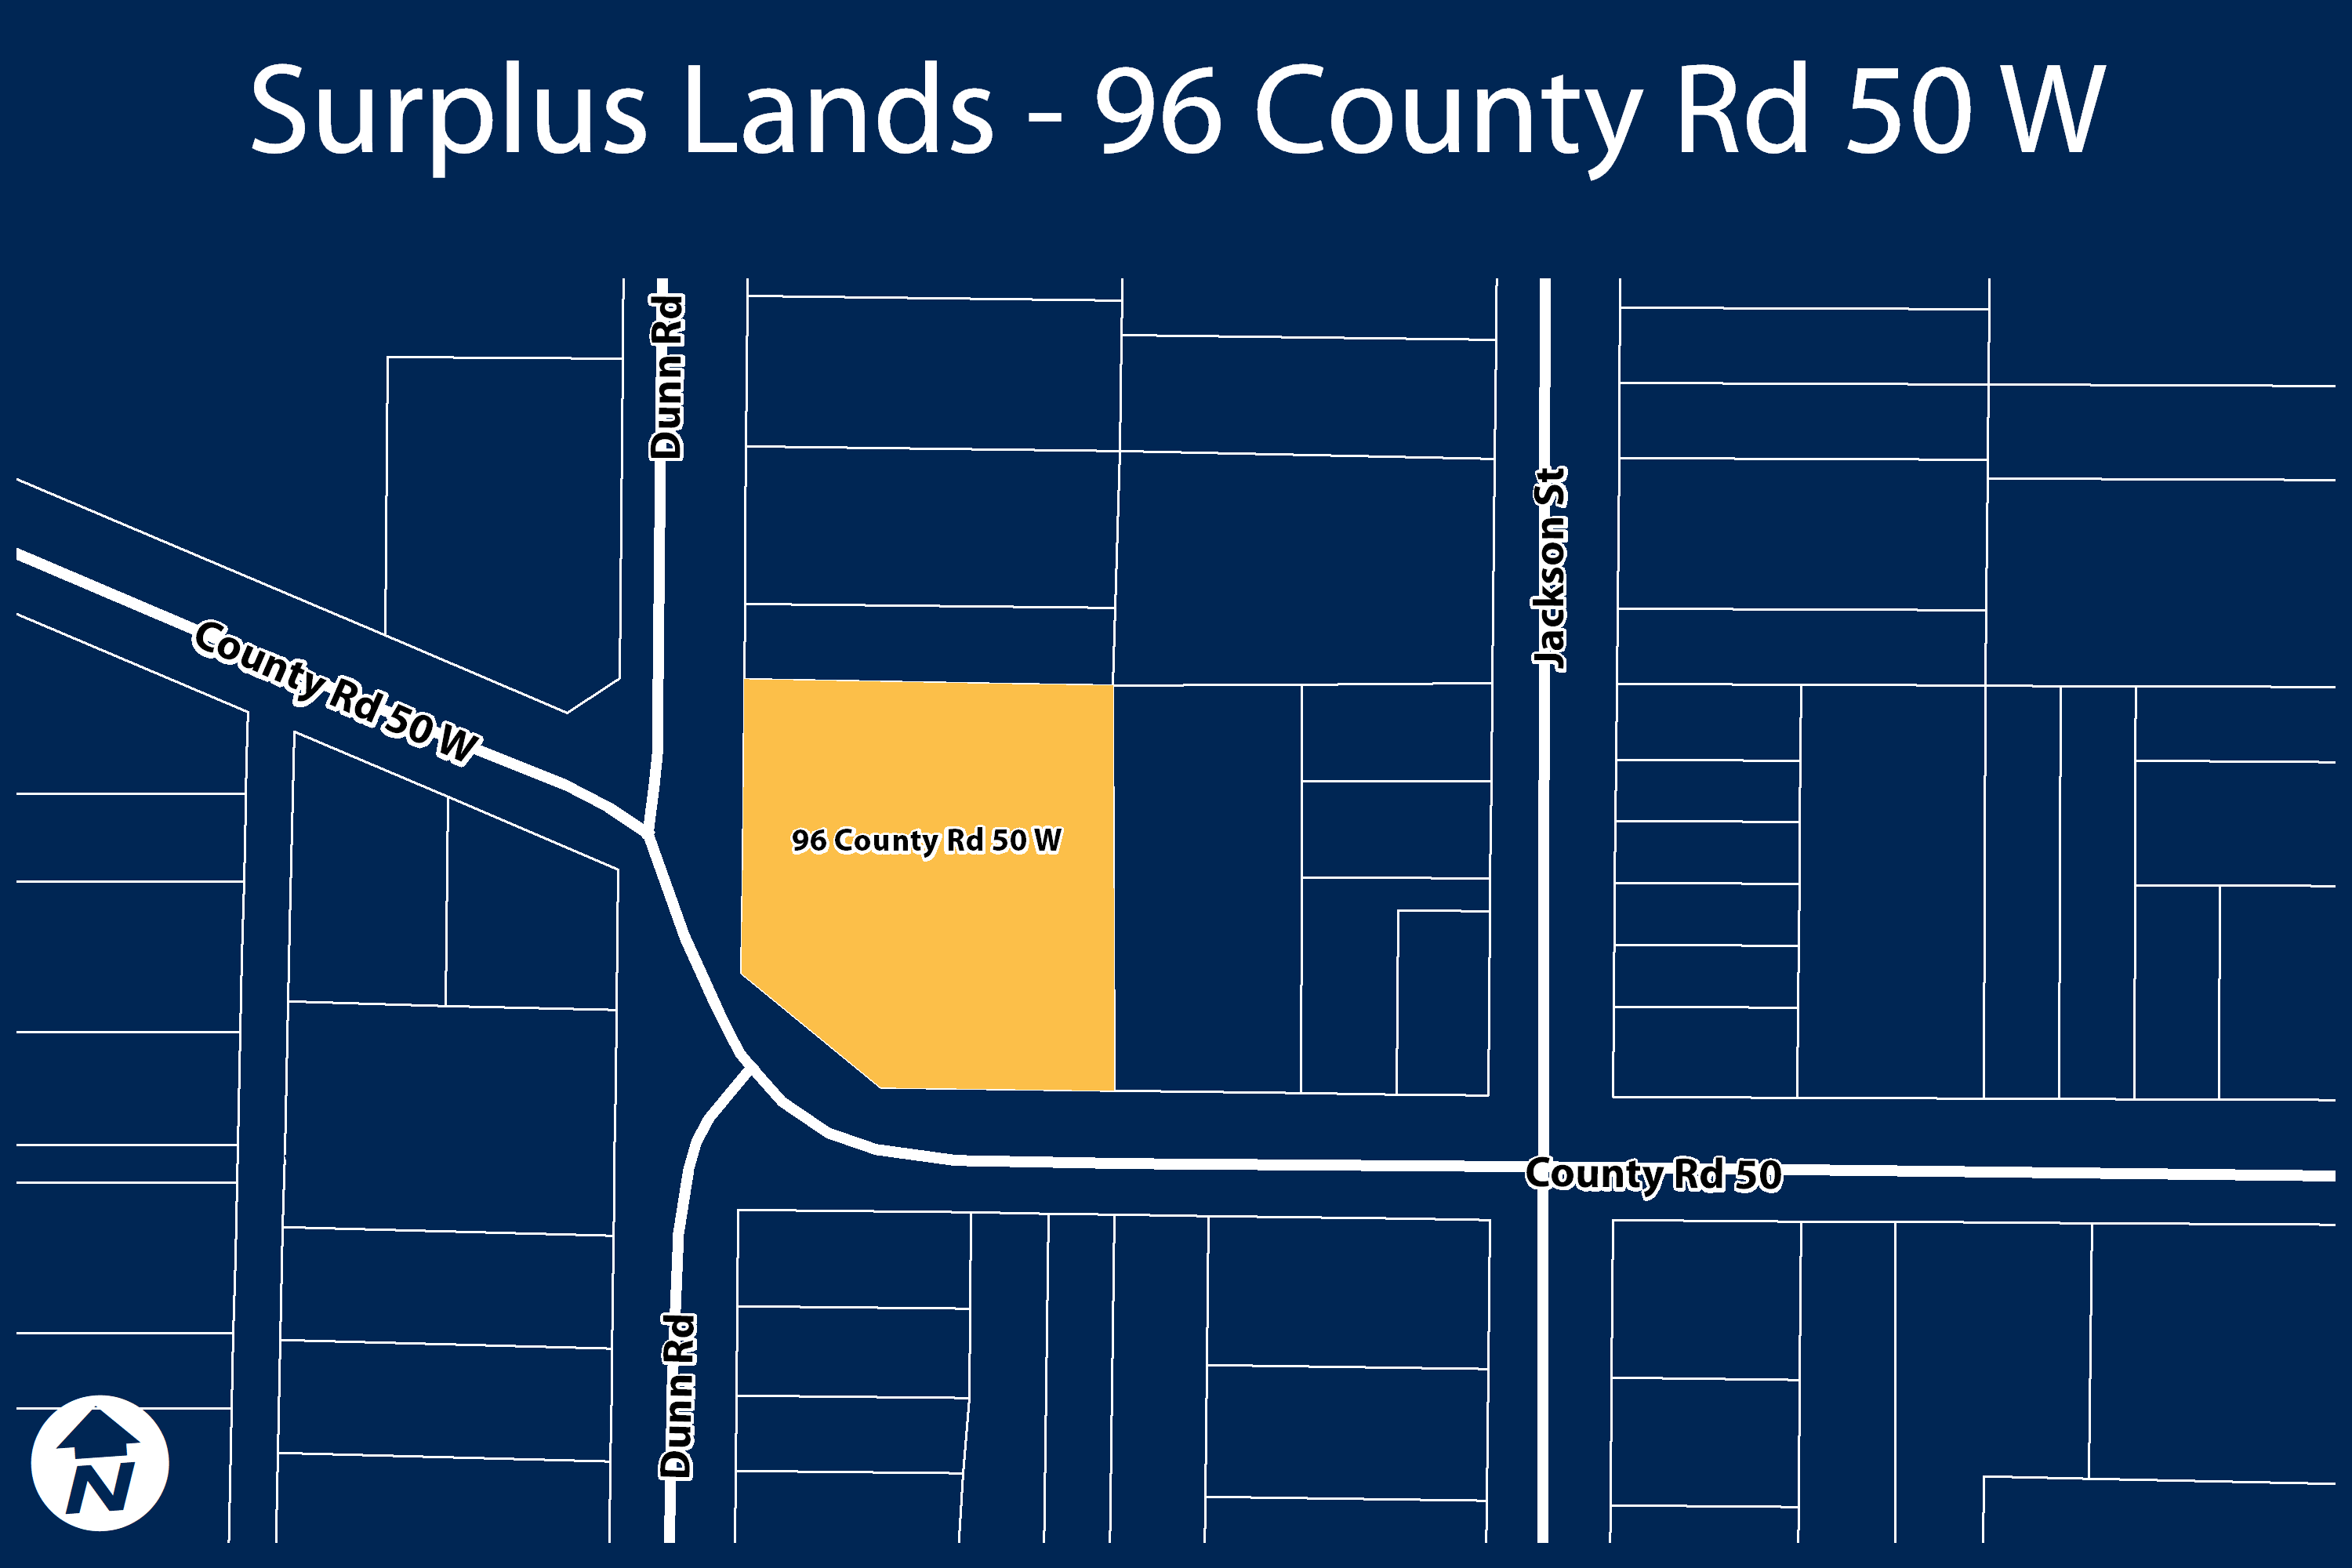 Key map showing location of surplus lands at 96 County Road 50 W